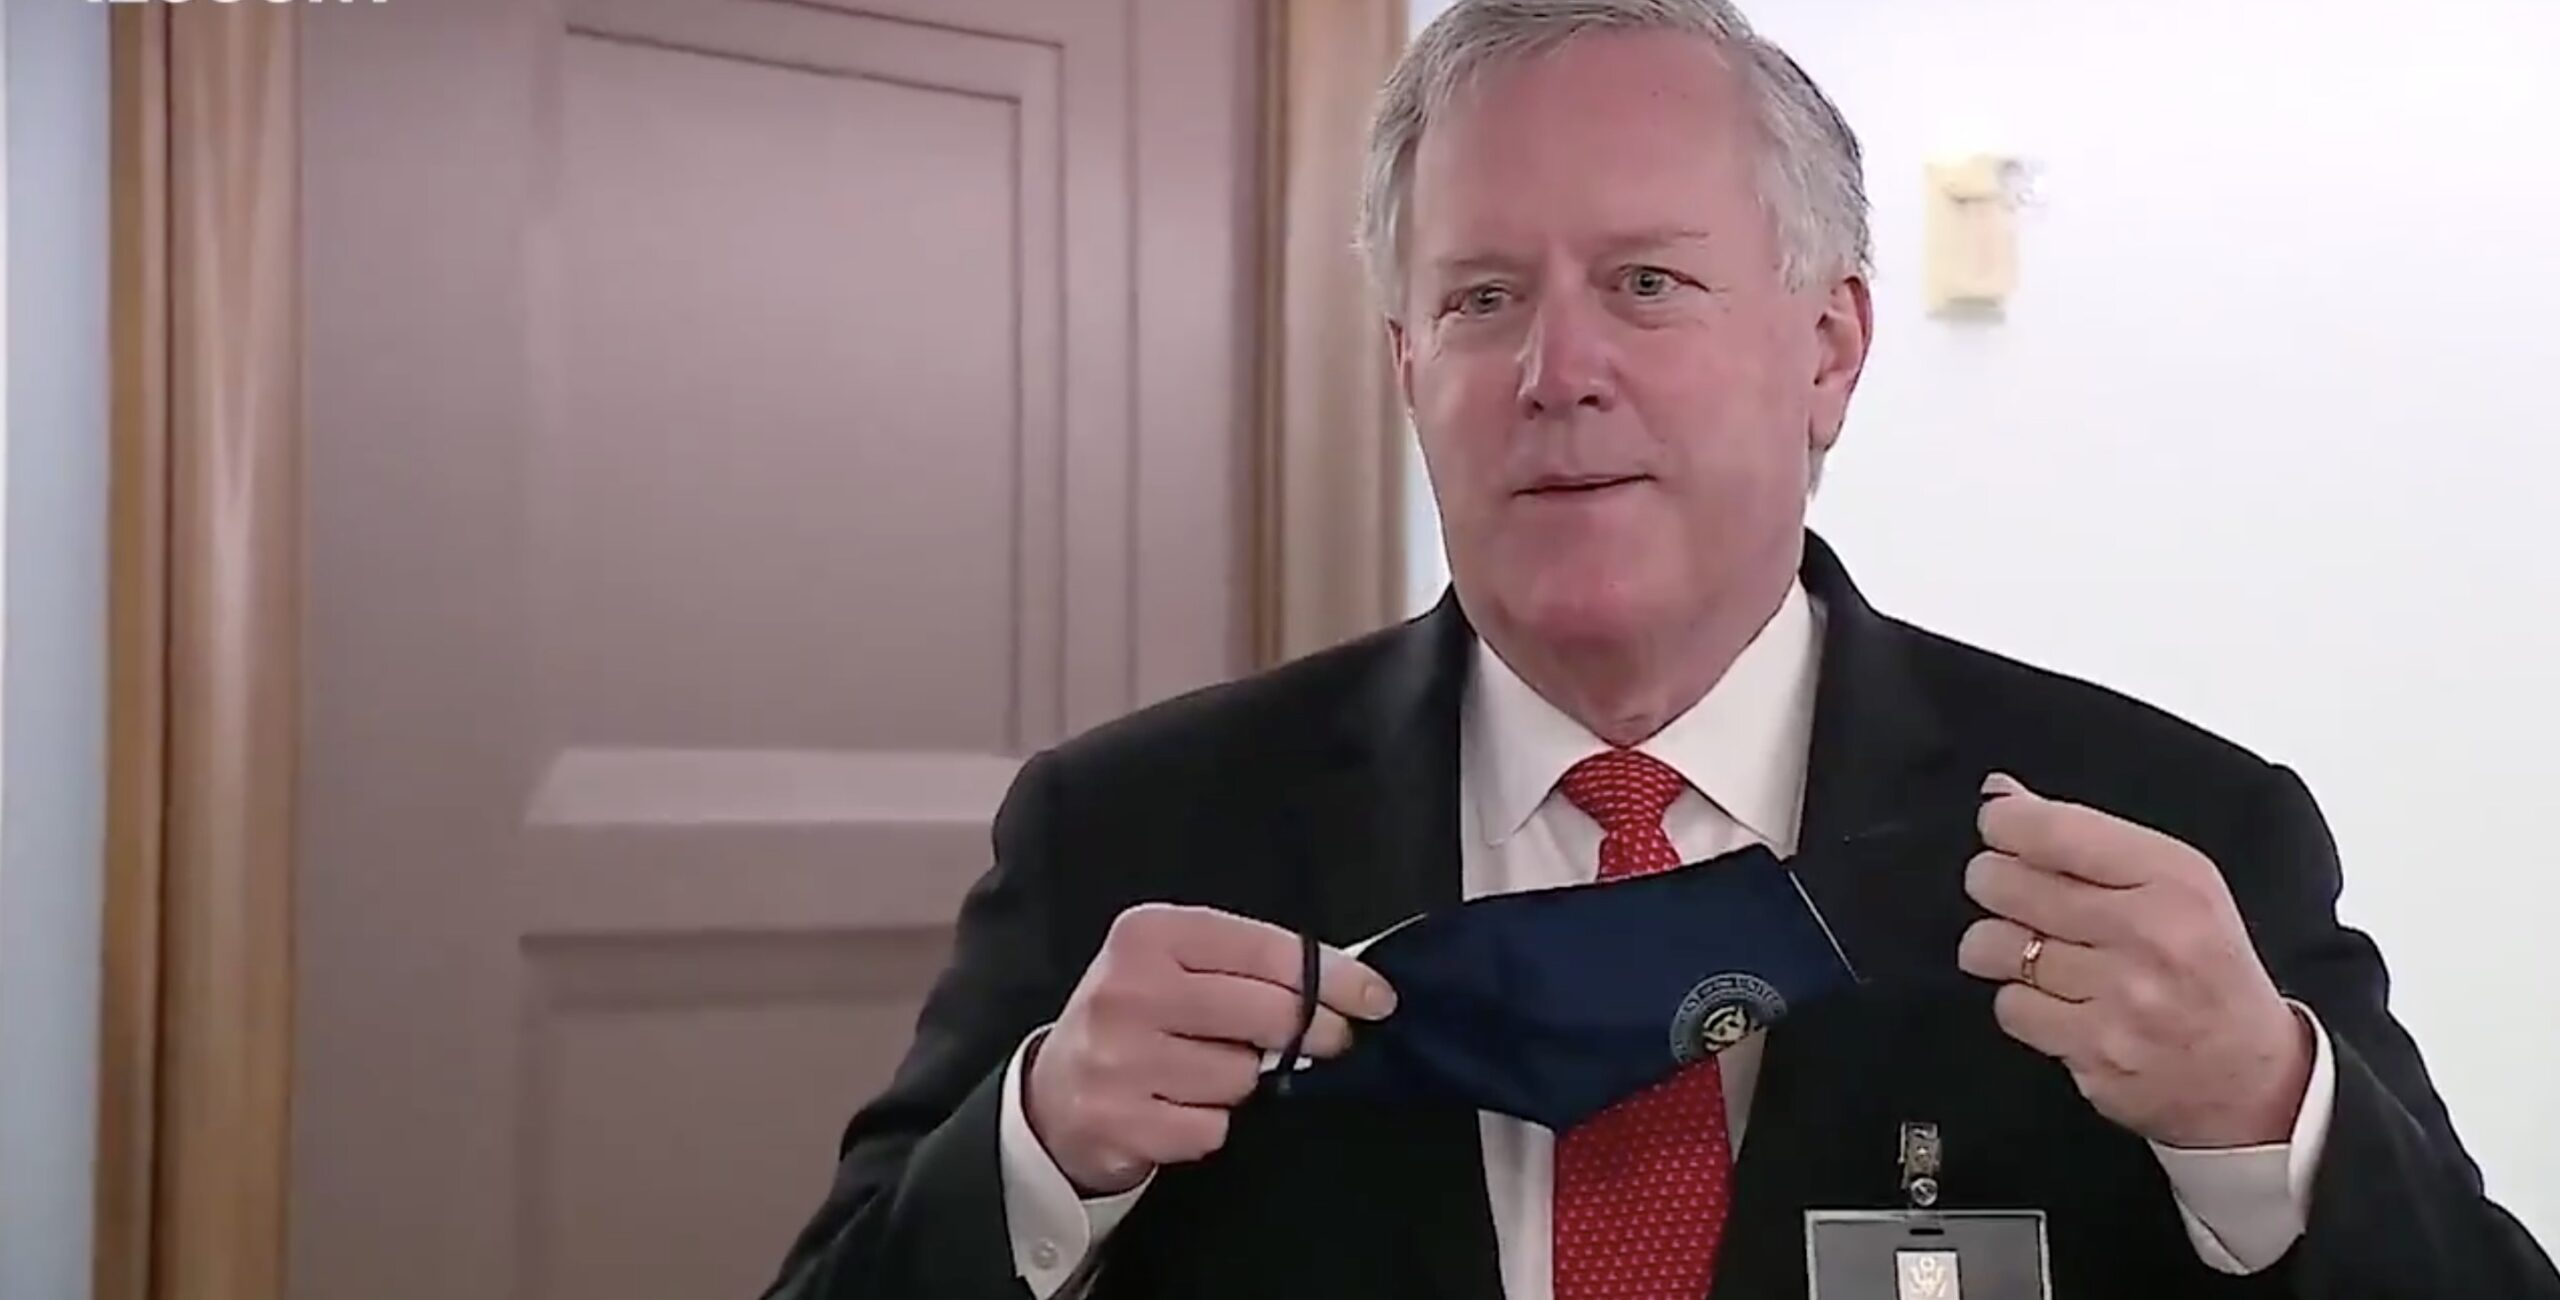 Mark Meadows Storms Off, Refuses to Talk to Reporters After One Asks Him to Wear a Mask